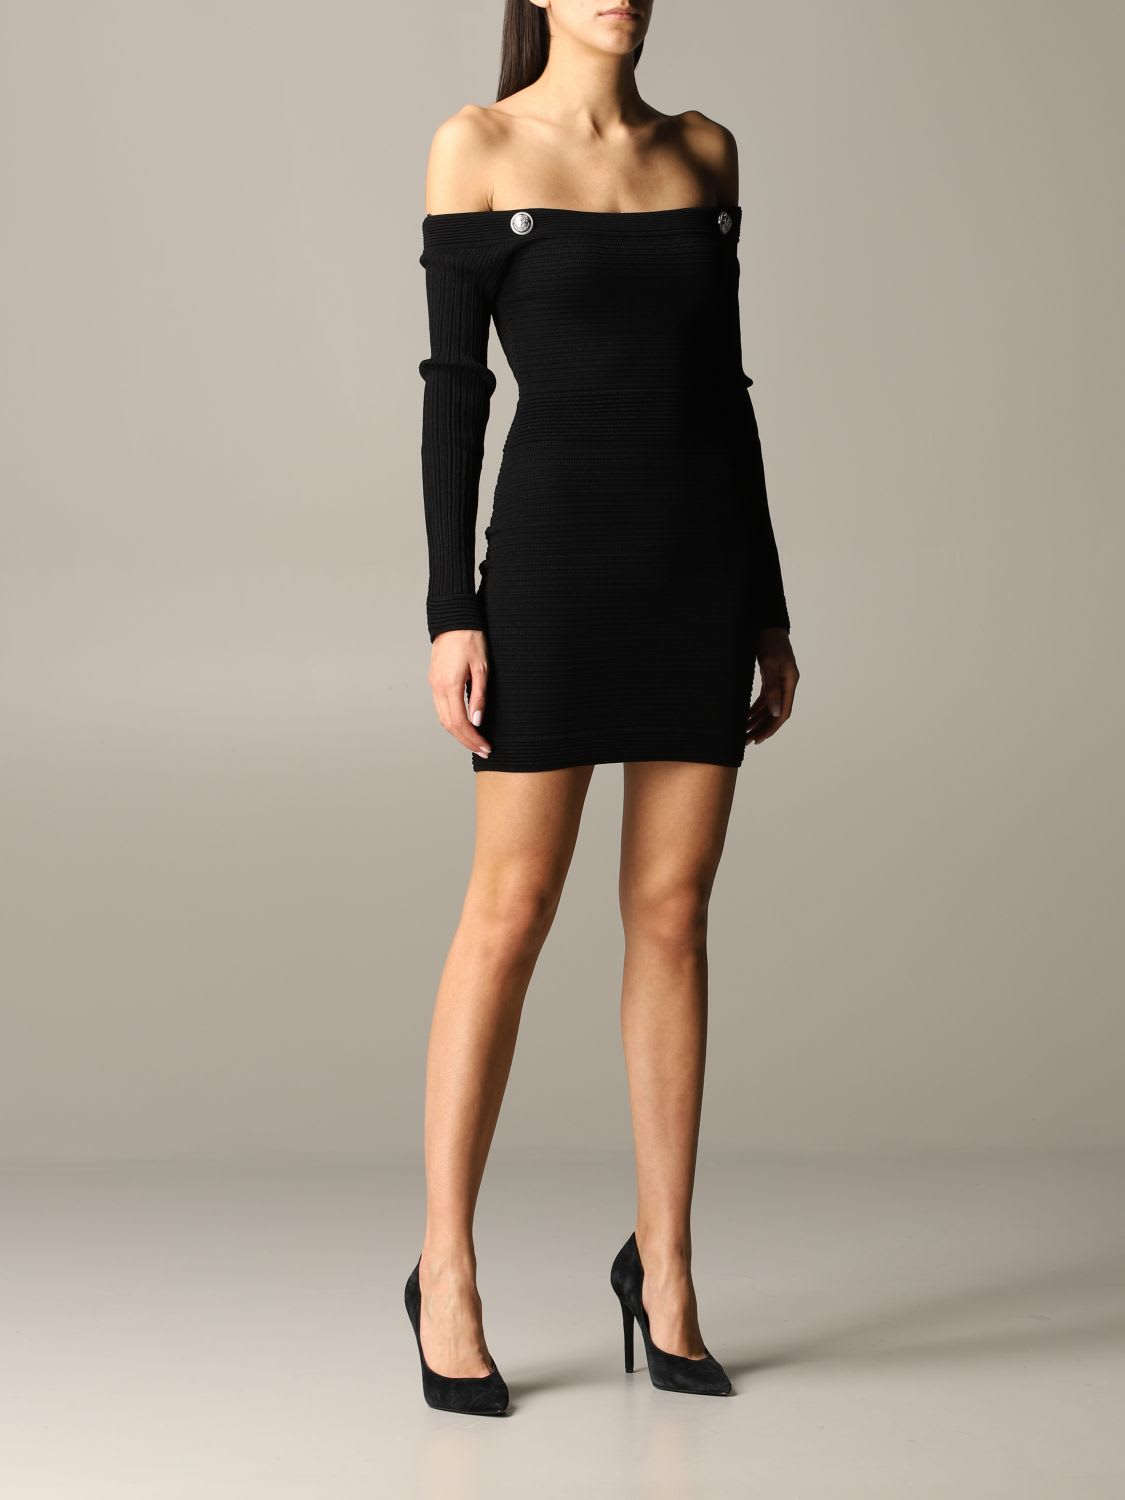 Buy Balmain Dress Balmain Dress With Jewel Buttons online, shop Balmain with free shipping